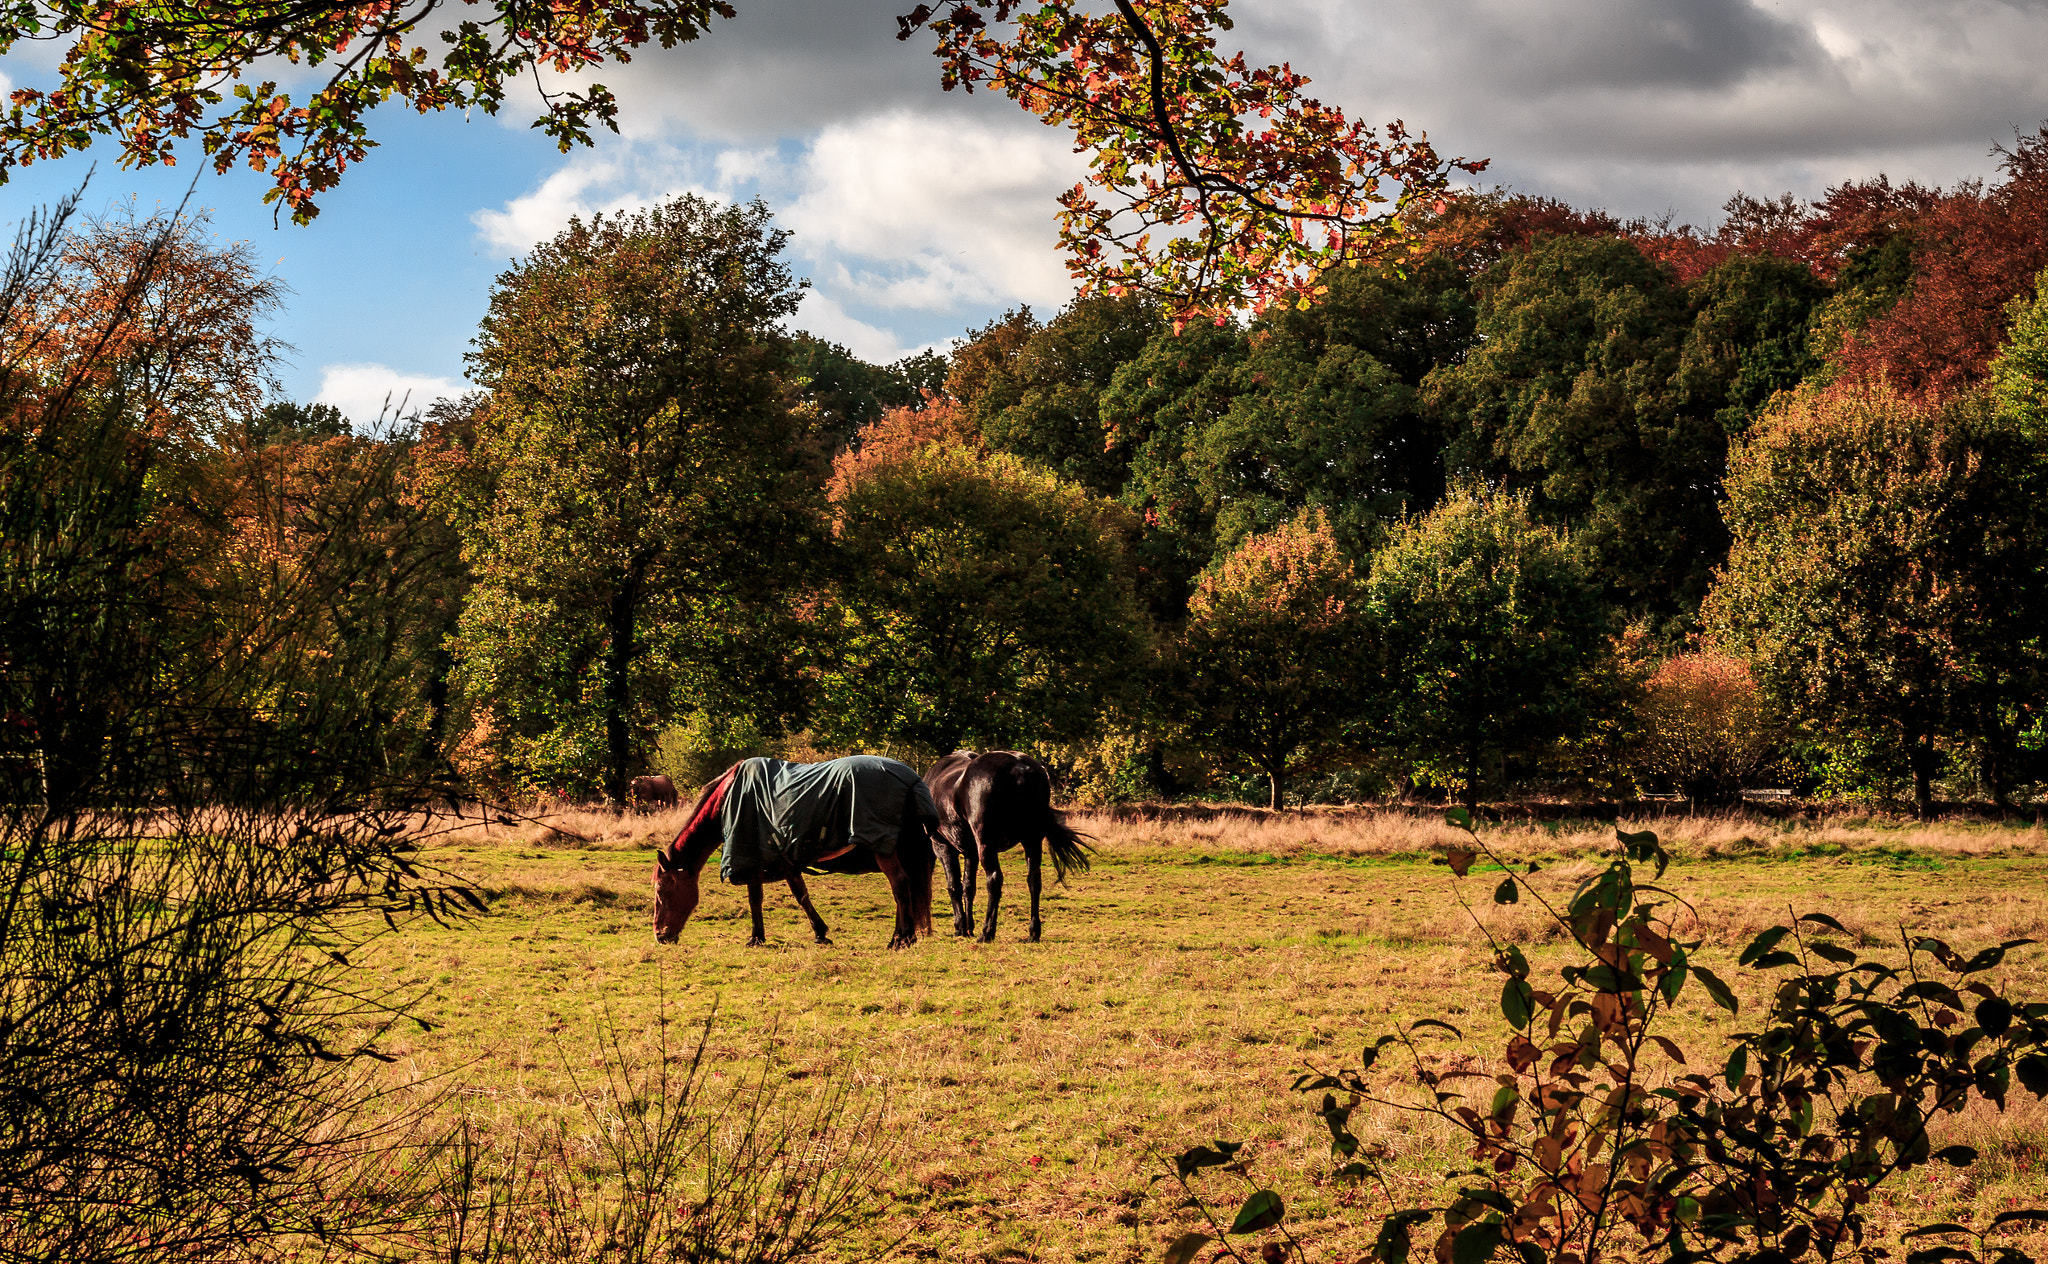 two horses in a field surrounded by trees in the autumn